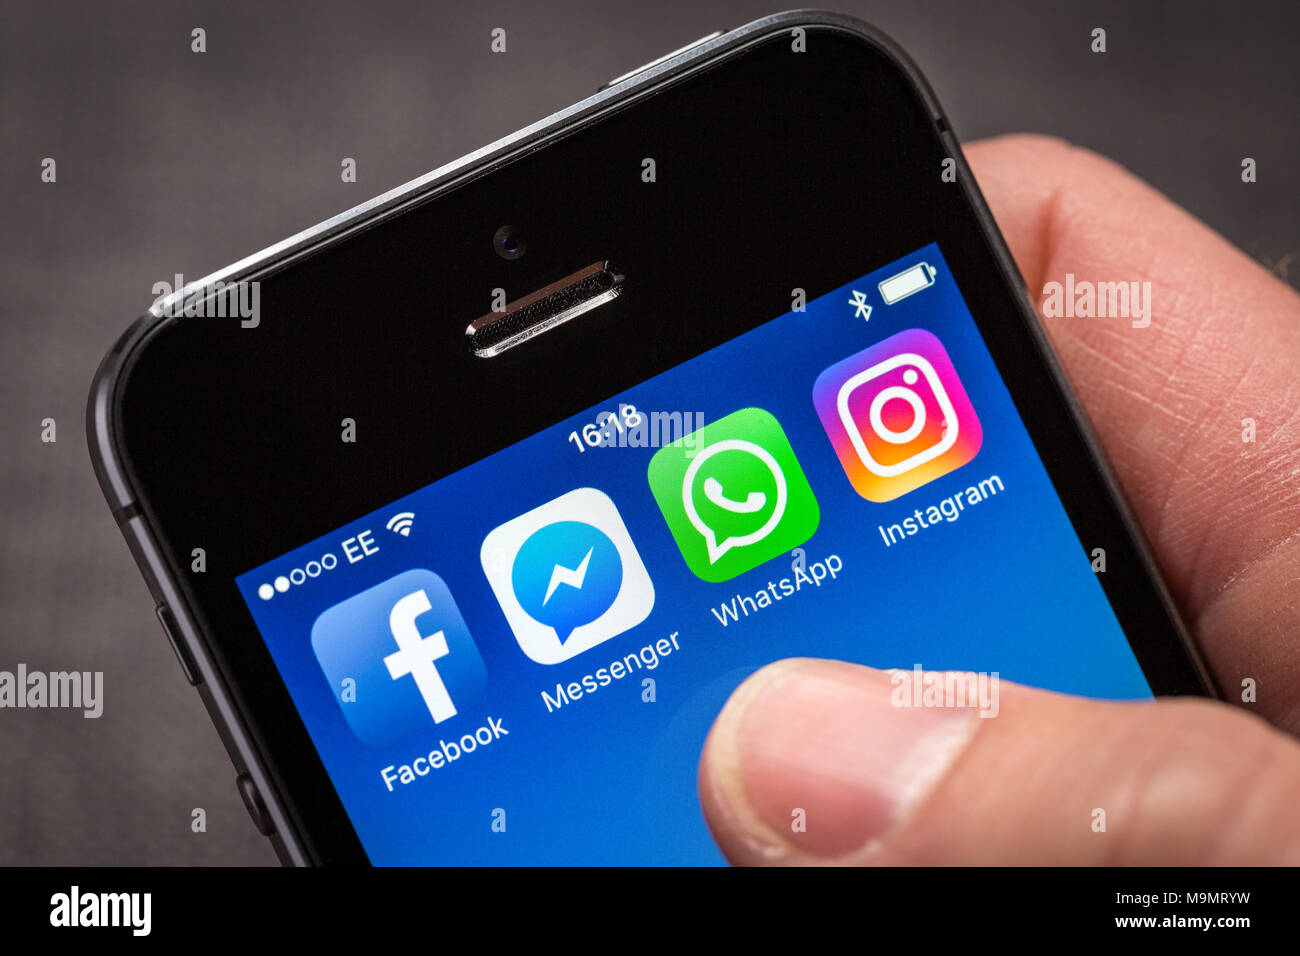 Facebook and associated company apps, Facebook Messenger, WhatsApp and Instagram on an iPhone - Stock Image